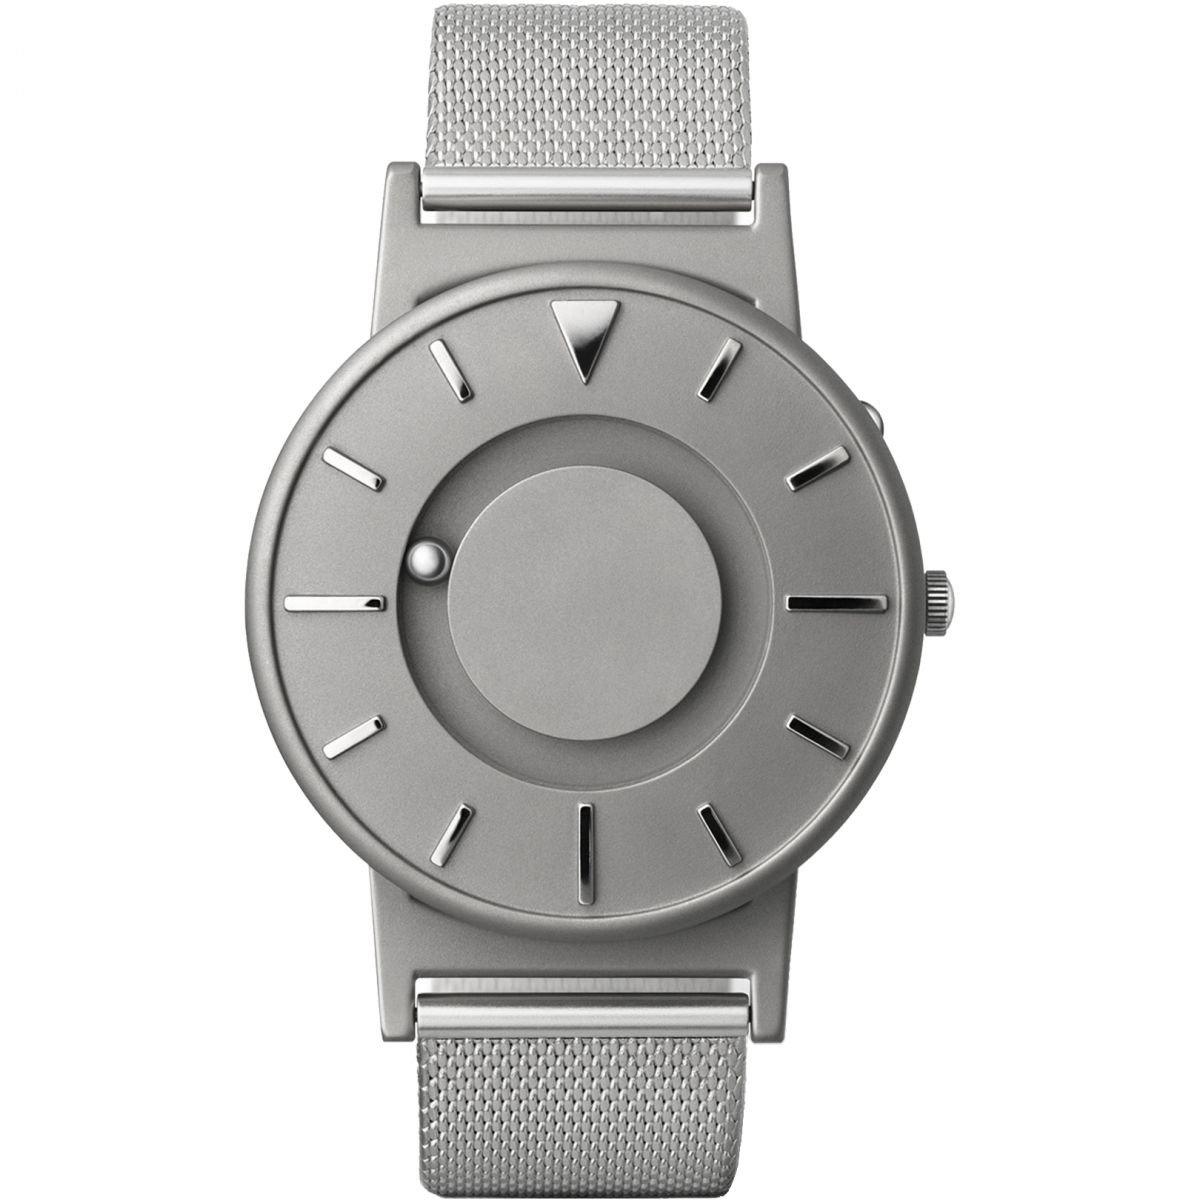 crystal skagen watches ancher image watch denmark ladies grahams mesh steel metal jewellers a